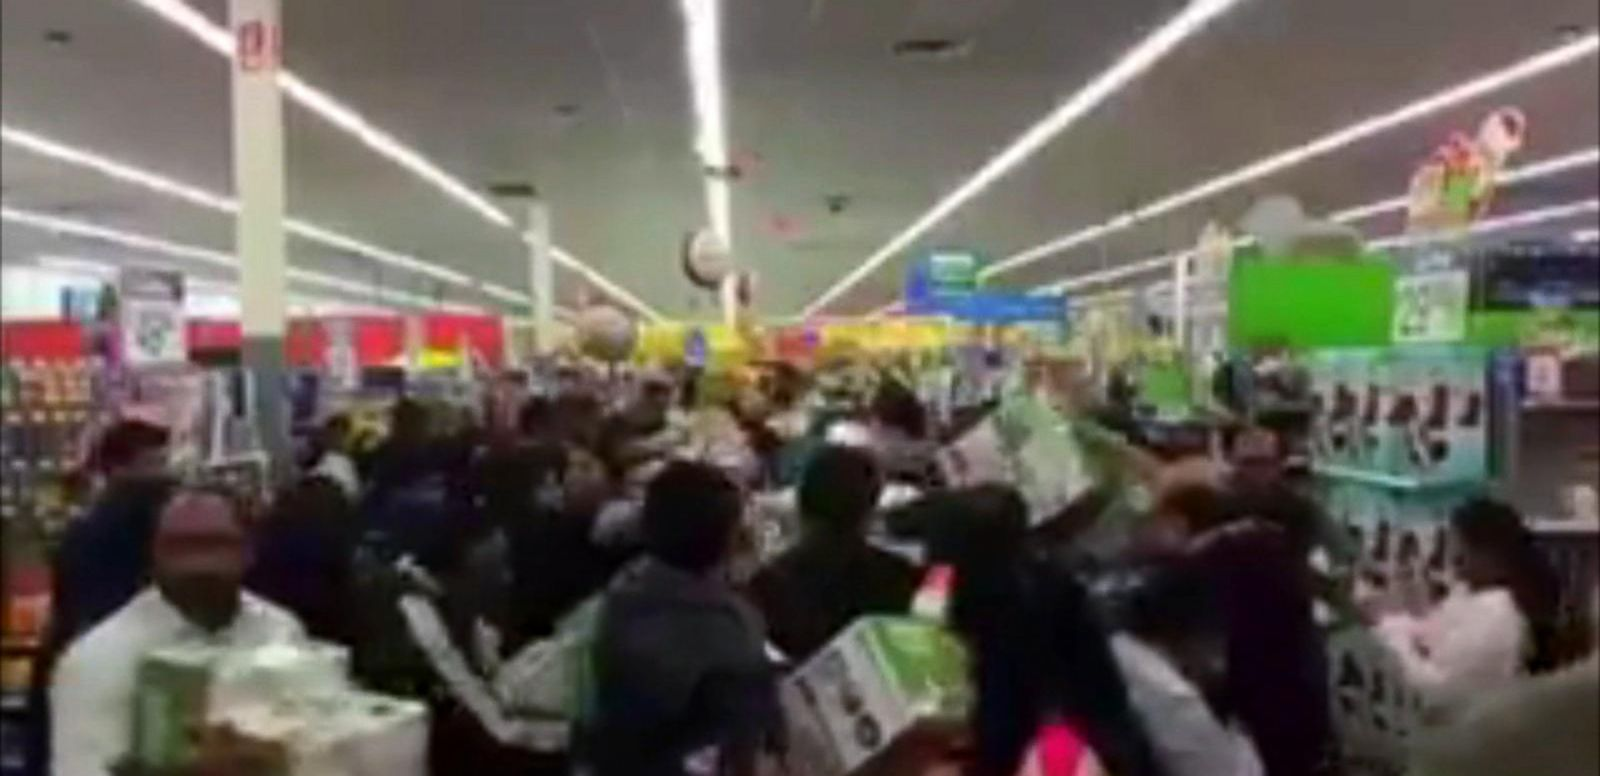 VIDEO: Technology Could Slow the Rush of Black Friday Shoppers